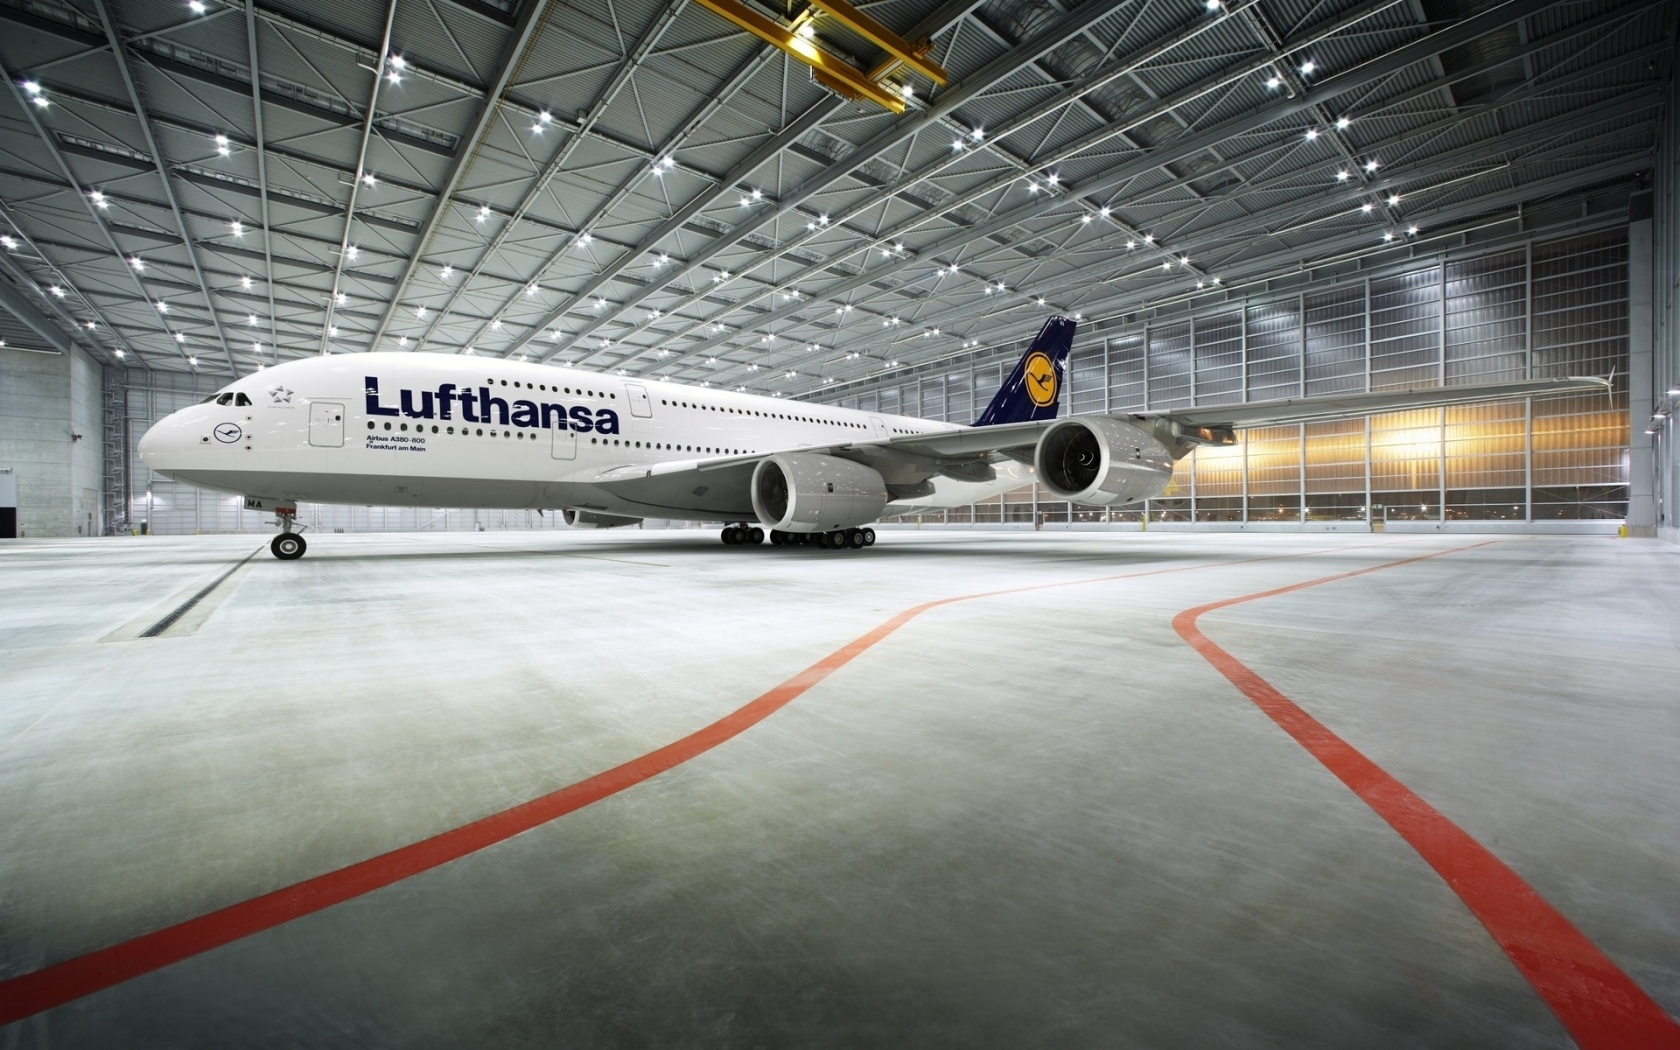 commercial aircraft lufthansa wallpaper 1680x1050 121507 wallpaperup. Black Bedroom Furniture Sets. Home Design Ideas